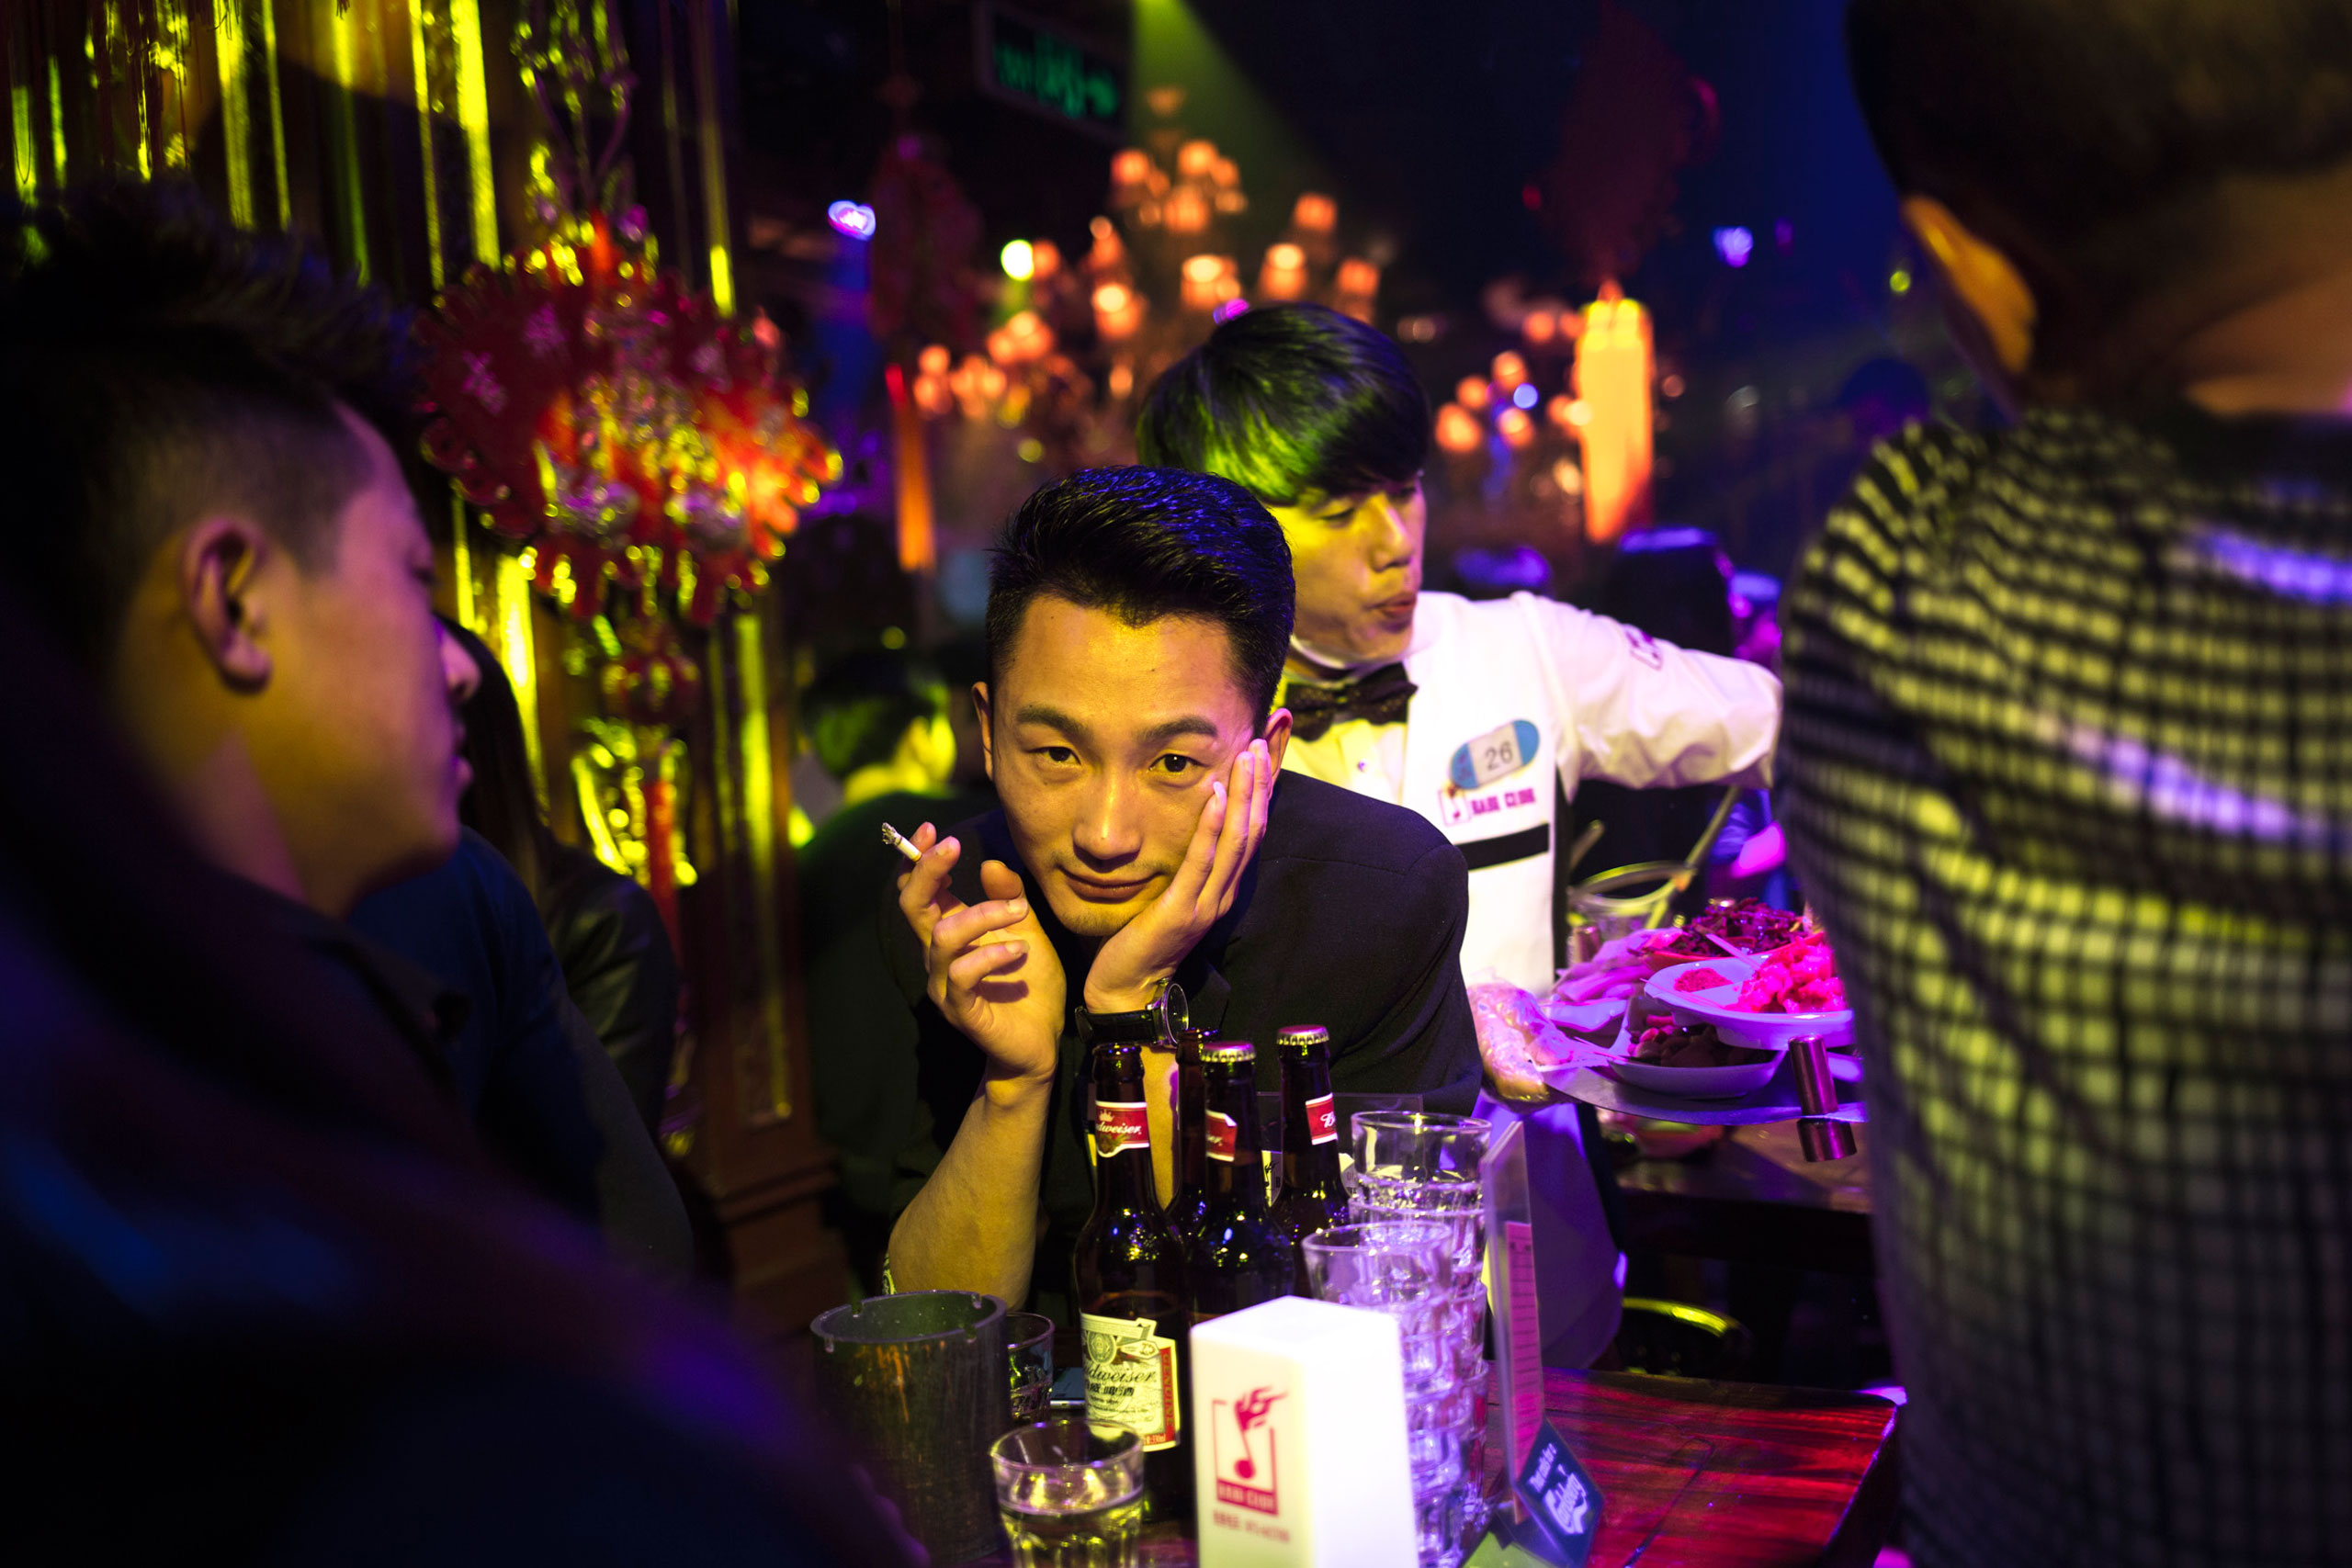 Patrons at a night club in Kundu, where most clubs are located in Kunming, Yunnan Province, China, Feb. 28, 2015.